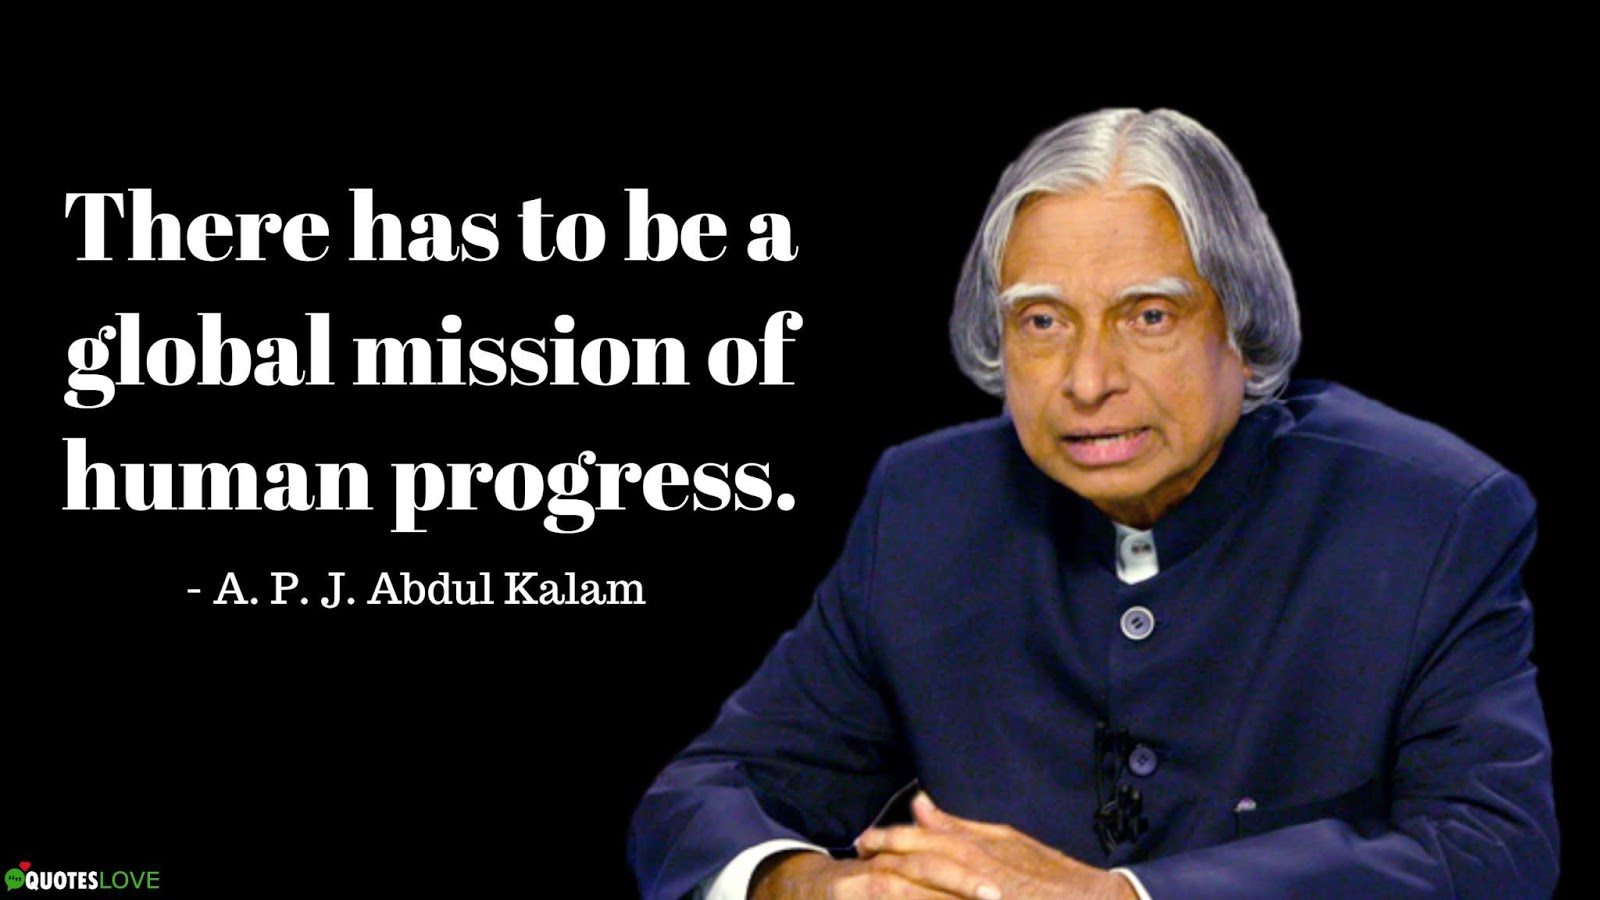 27+ Top A P J Abdul Kalam Quotes To Be Inspired